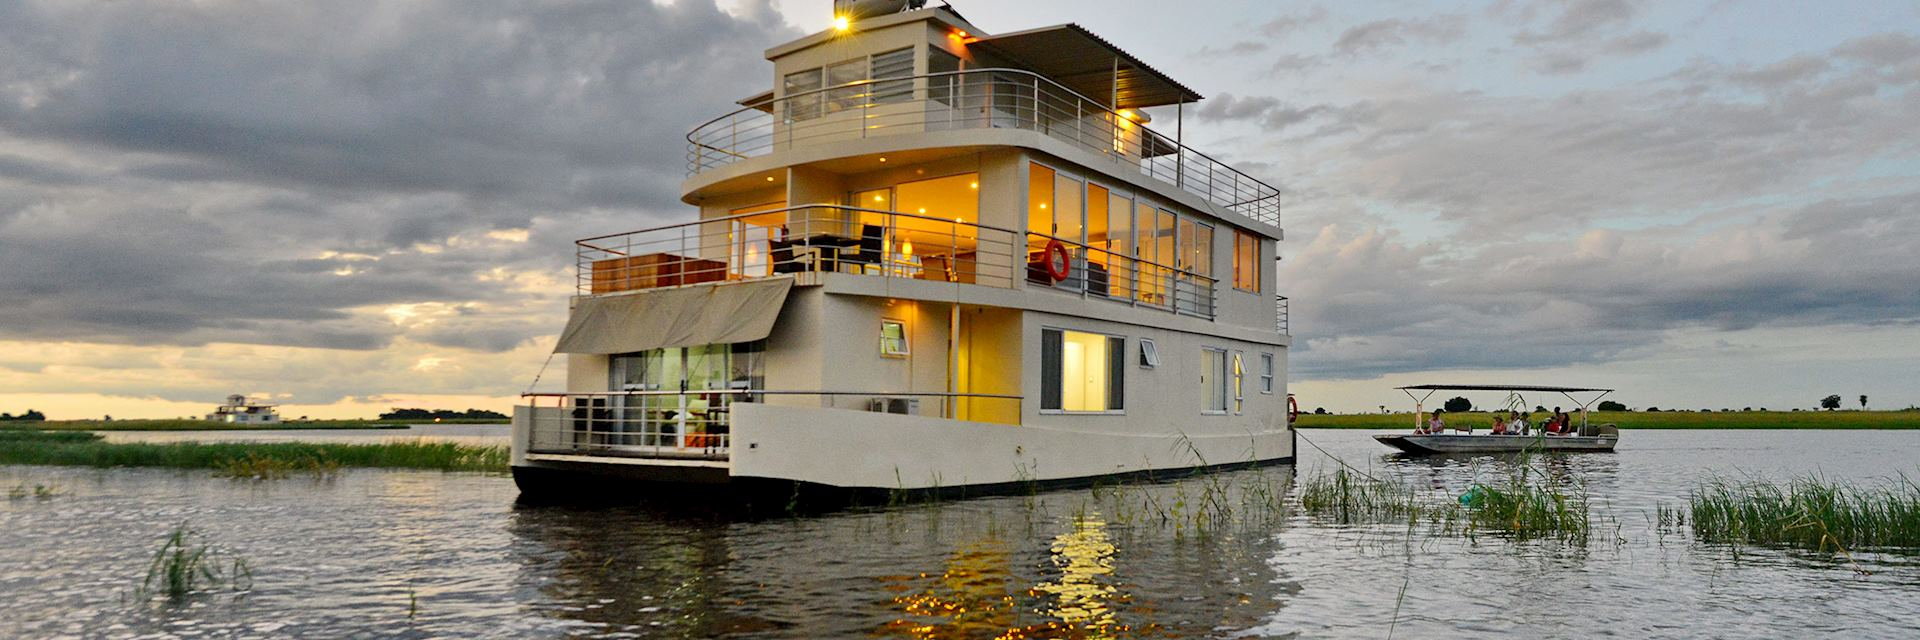 Chobe Princess Safariboat